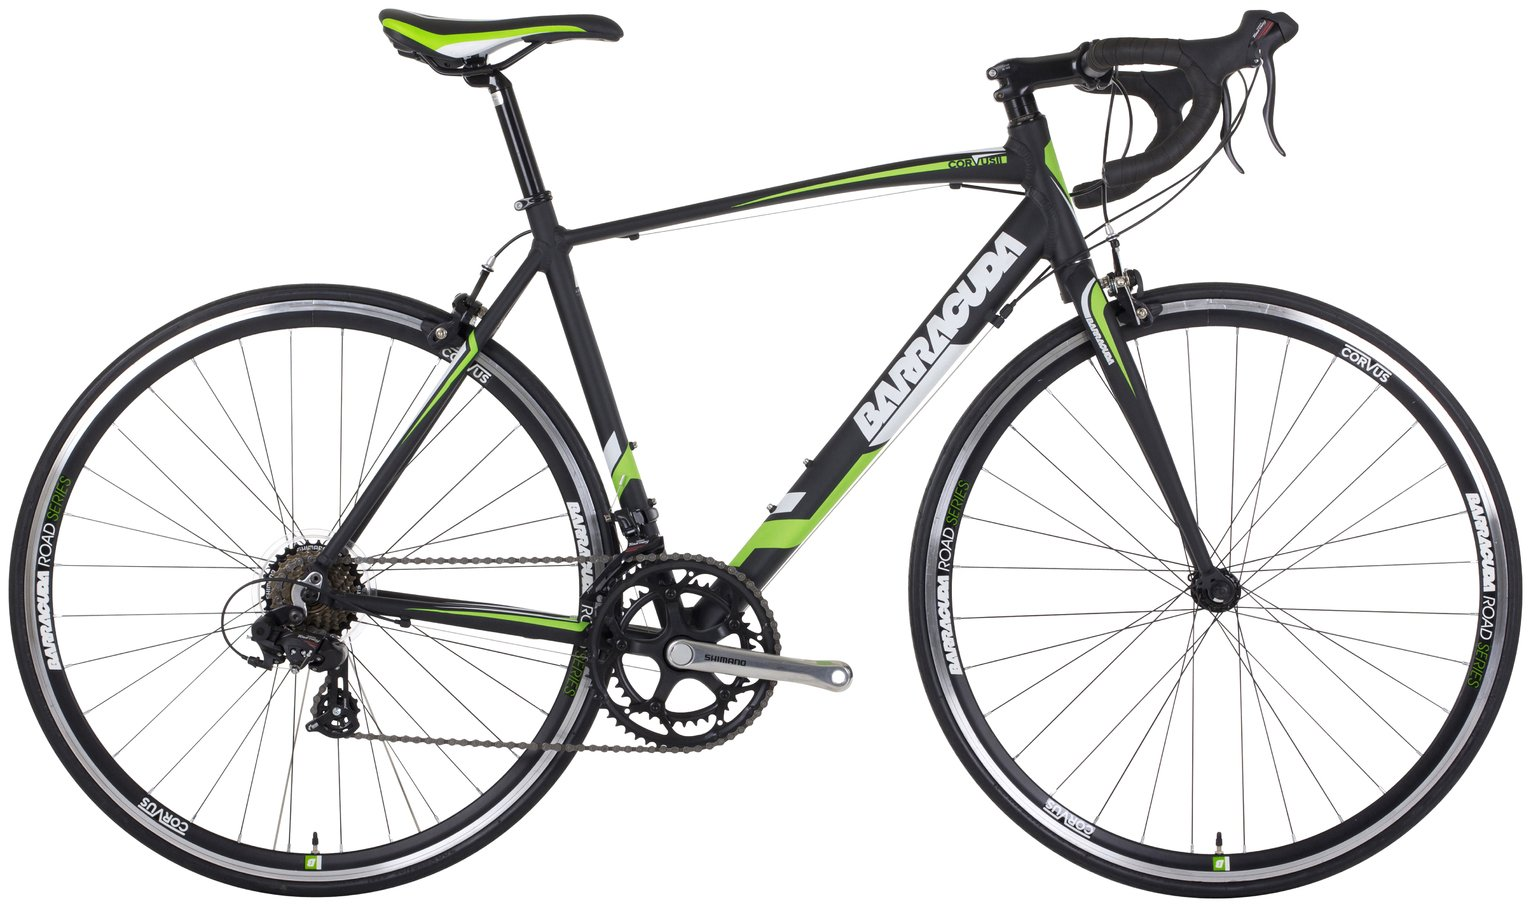 Image of Barracuda Corvus II 22 Inch Road Bike - Unisex